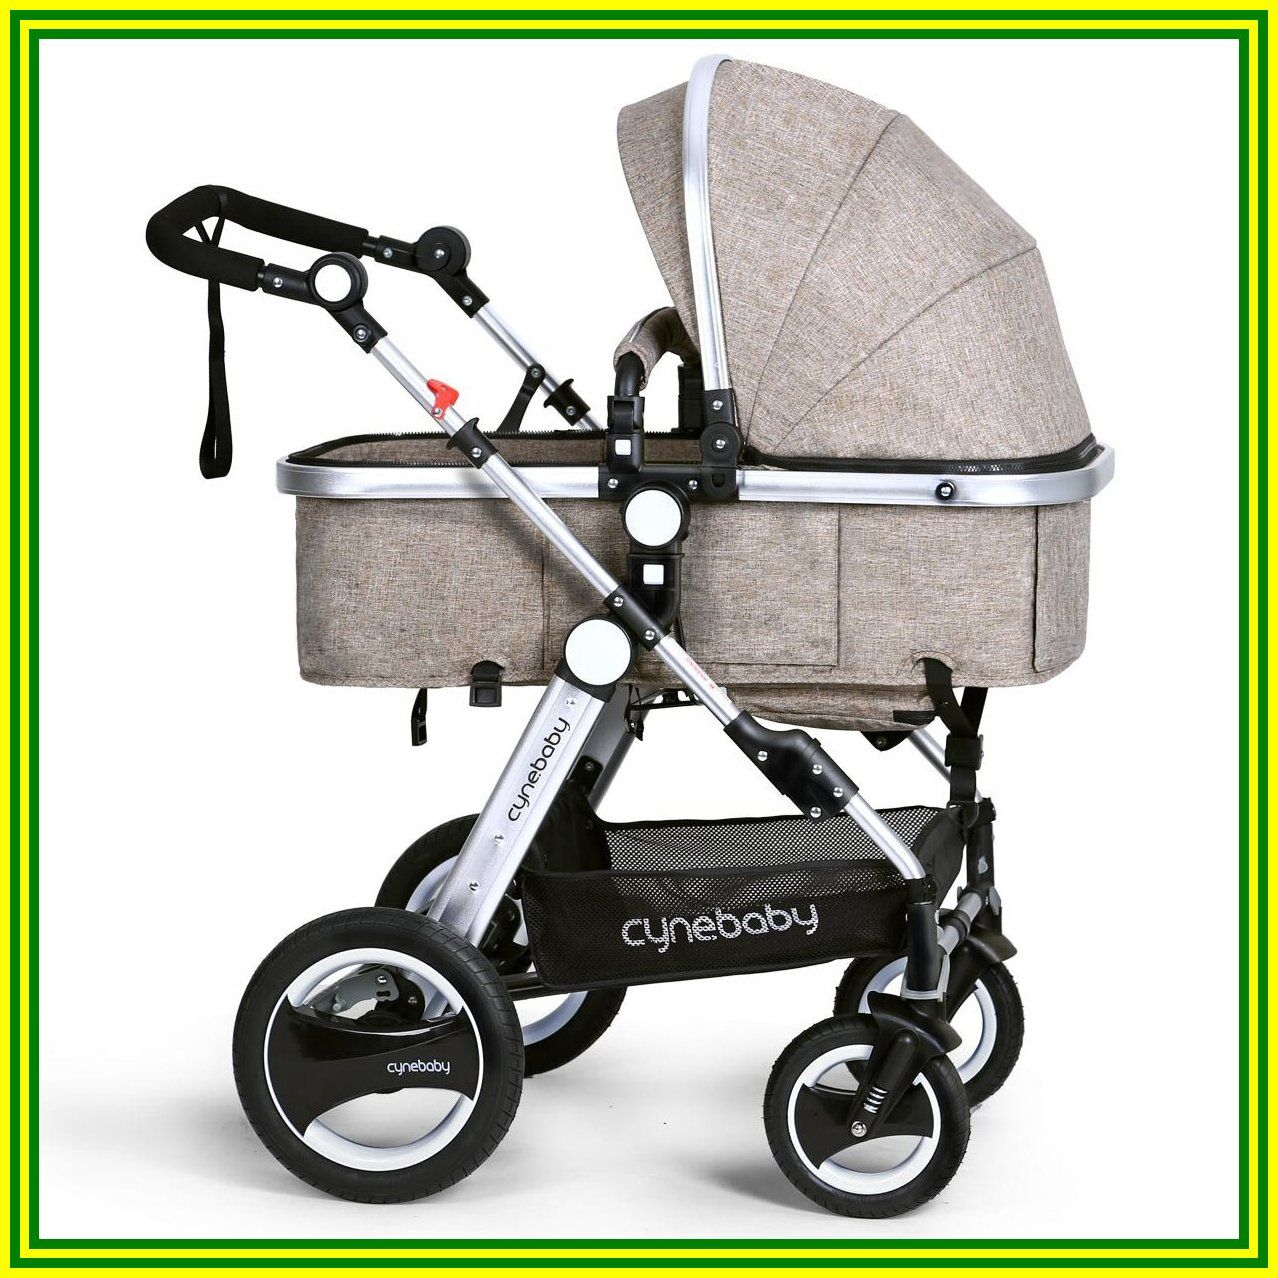 44 reference of best infant stroller for small car in 2020